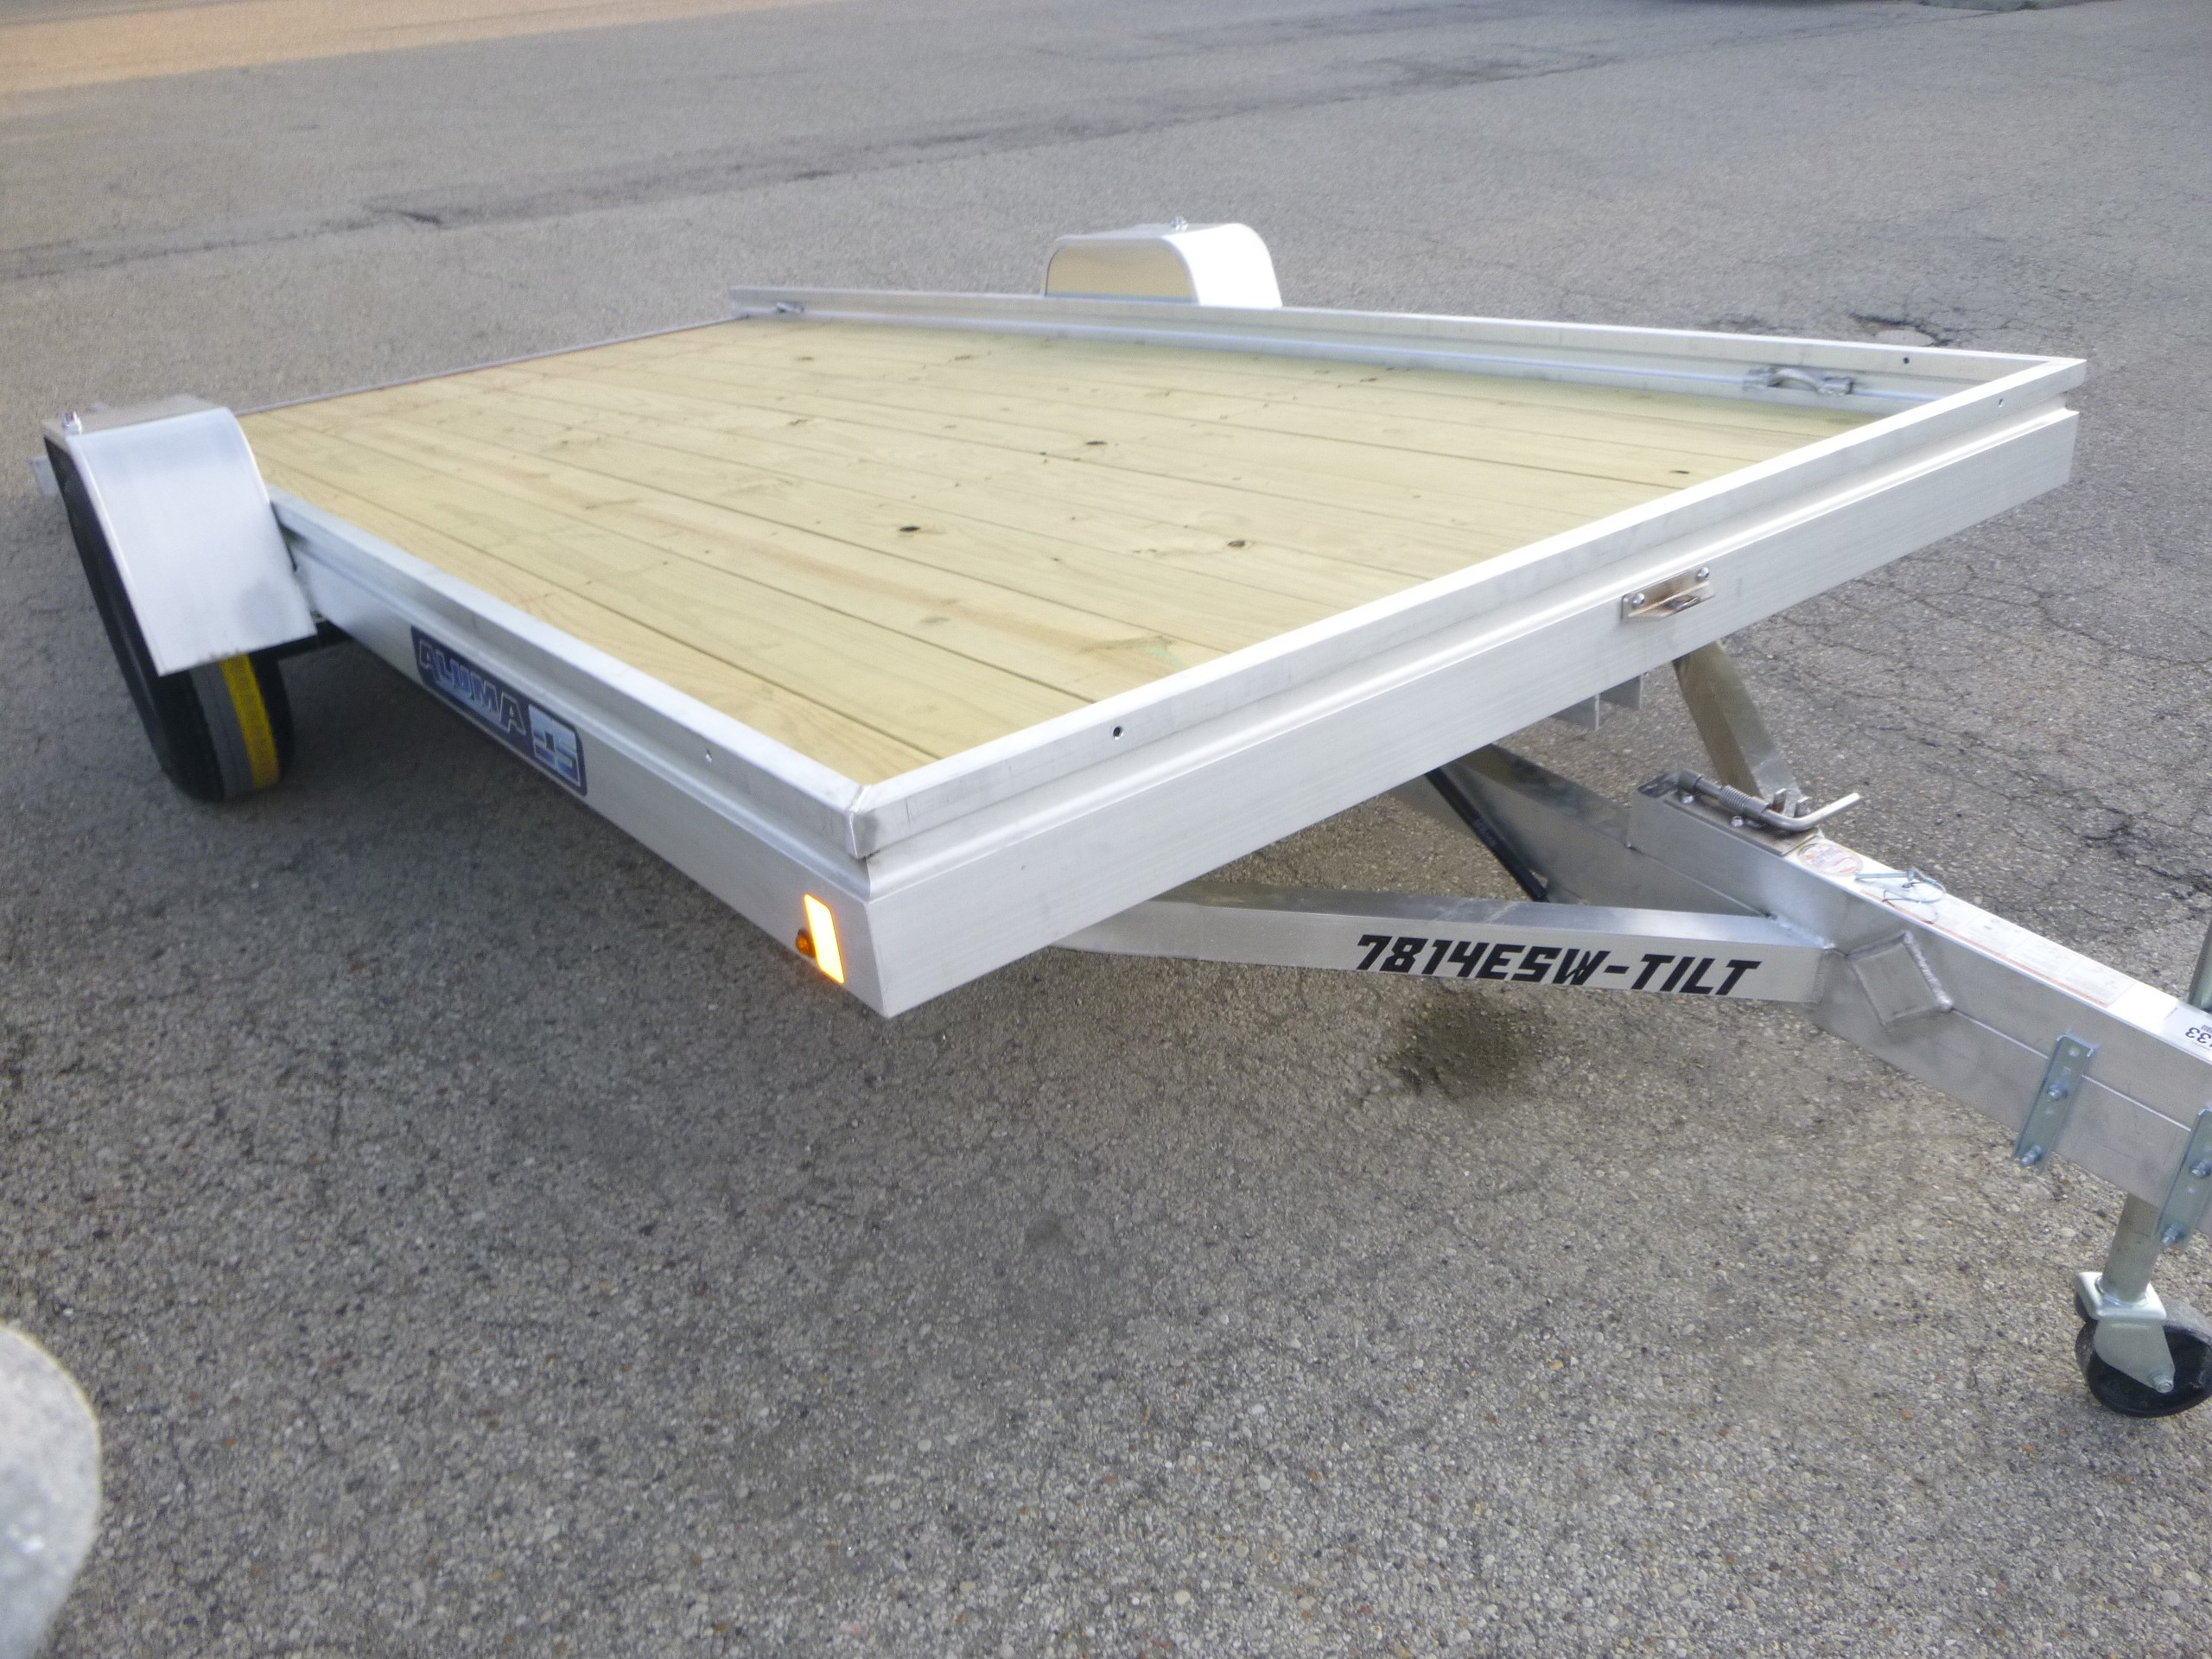 New, 2021, Aluma, 7814-ESW-Tilt, Utility/Light-Duty Trailers